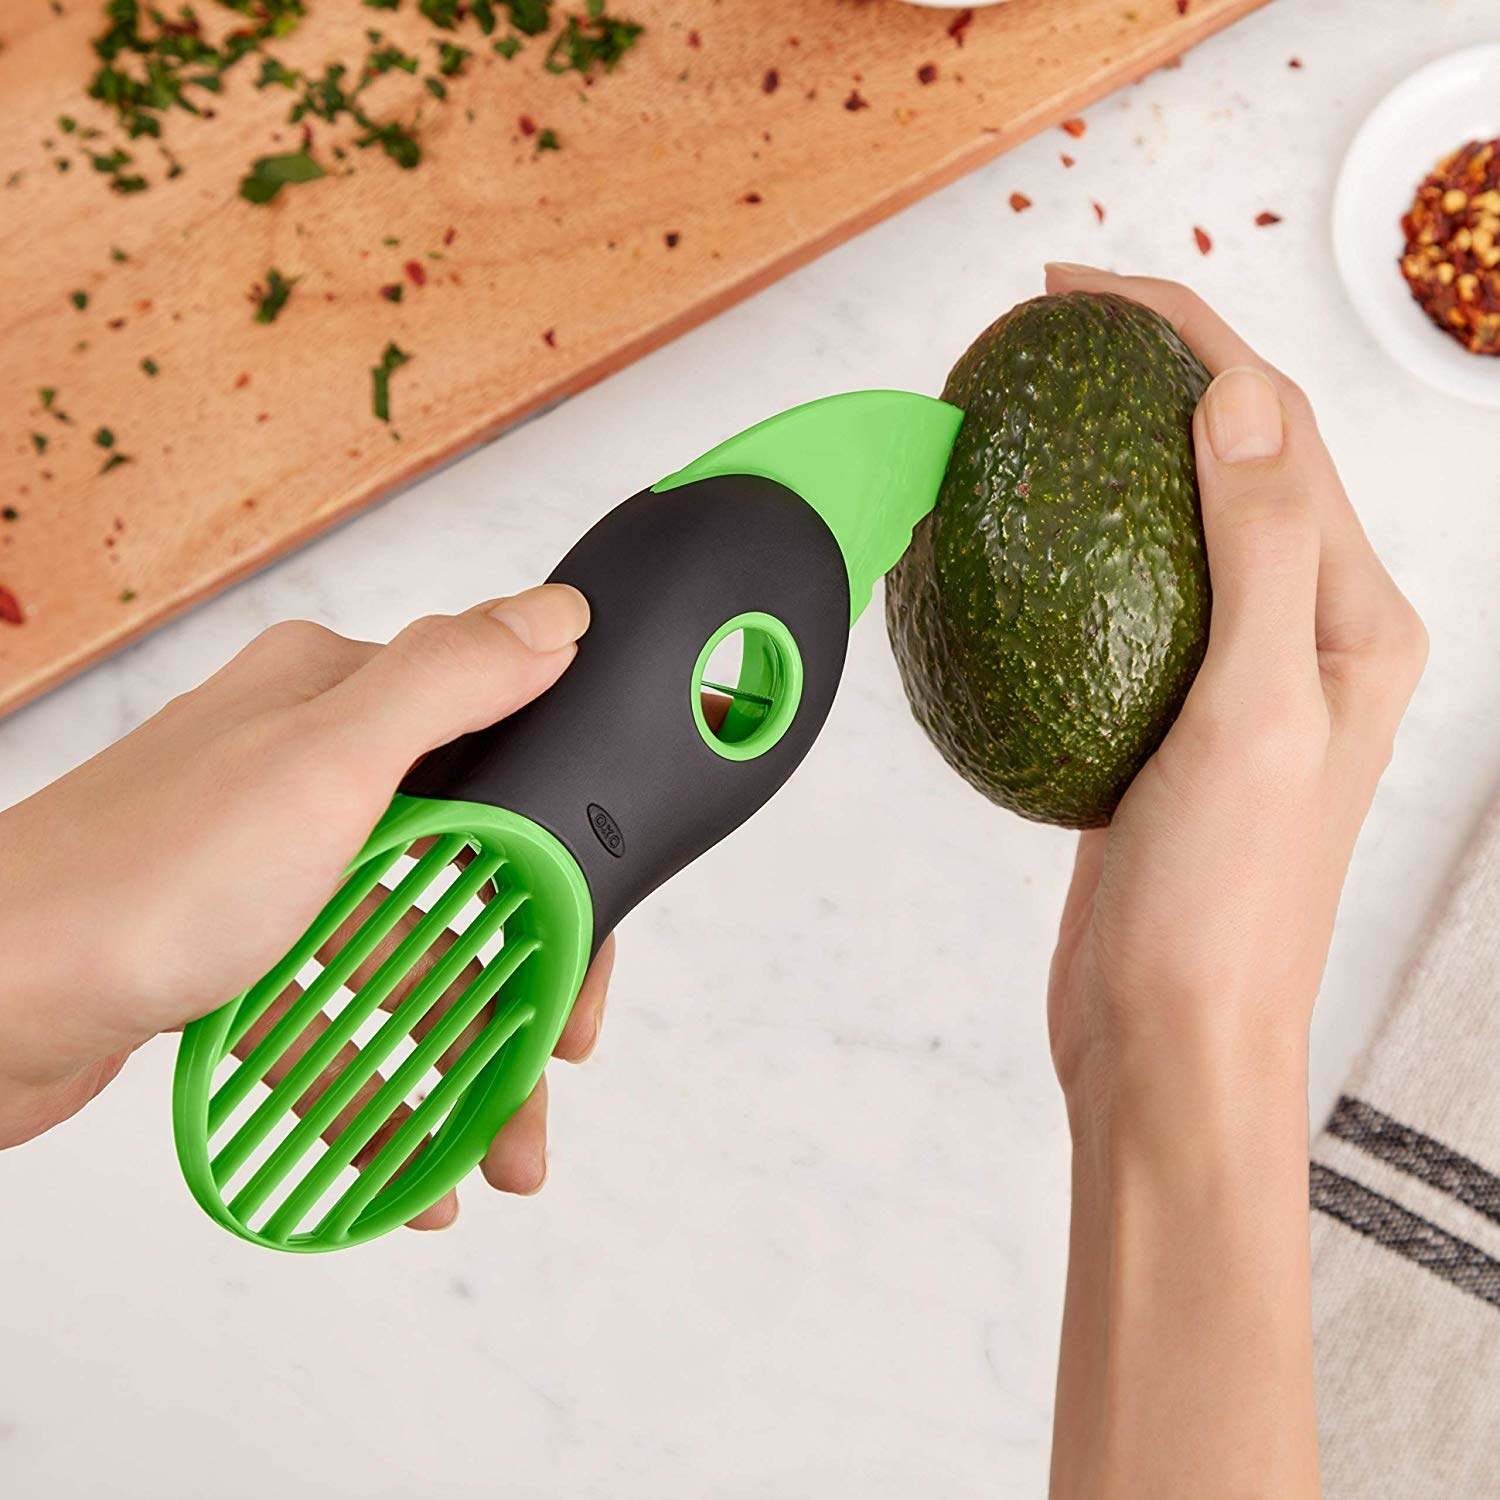 Avocado slicer slicing into avocado